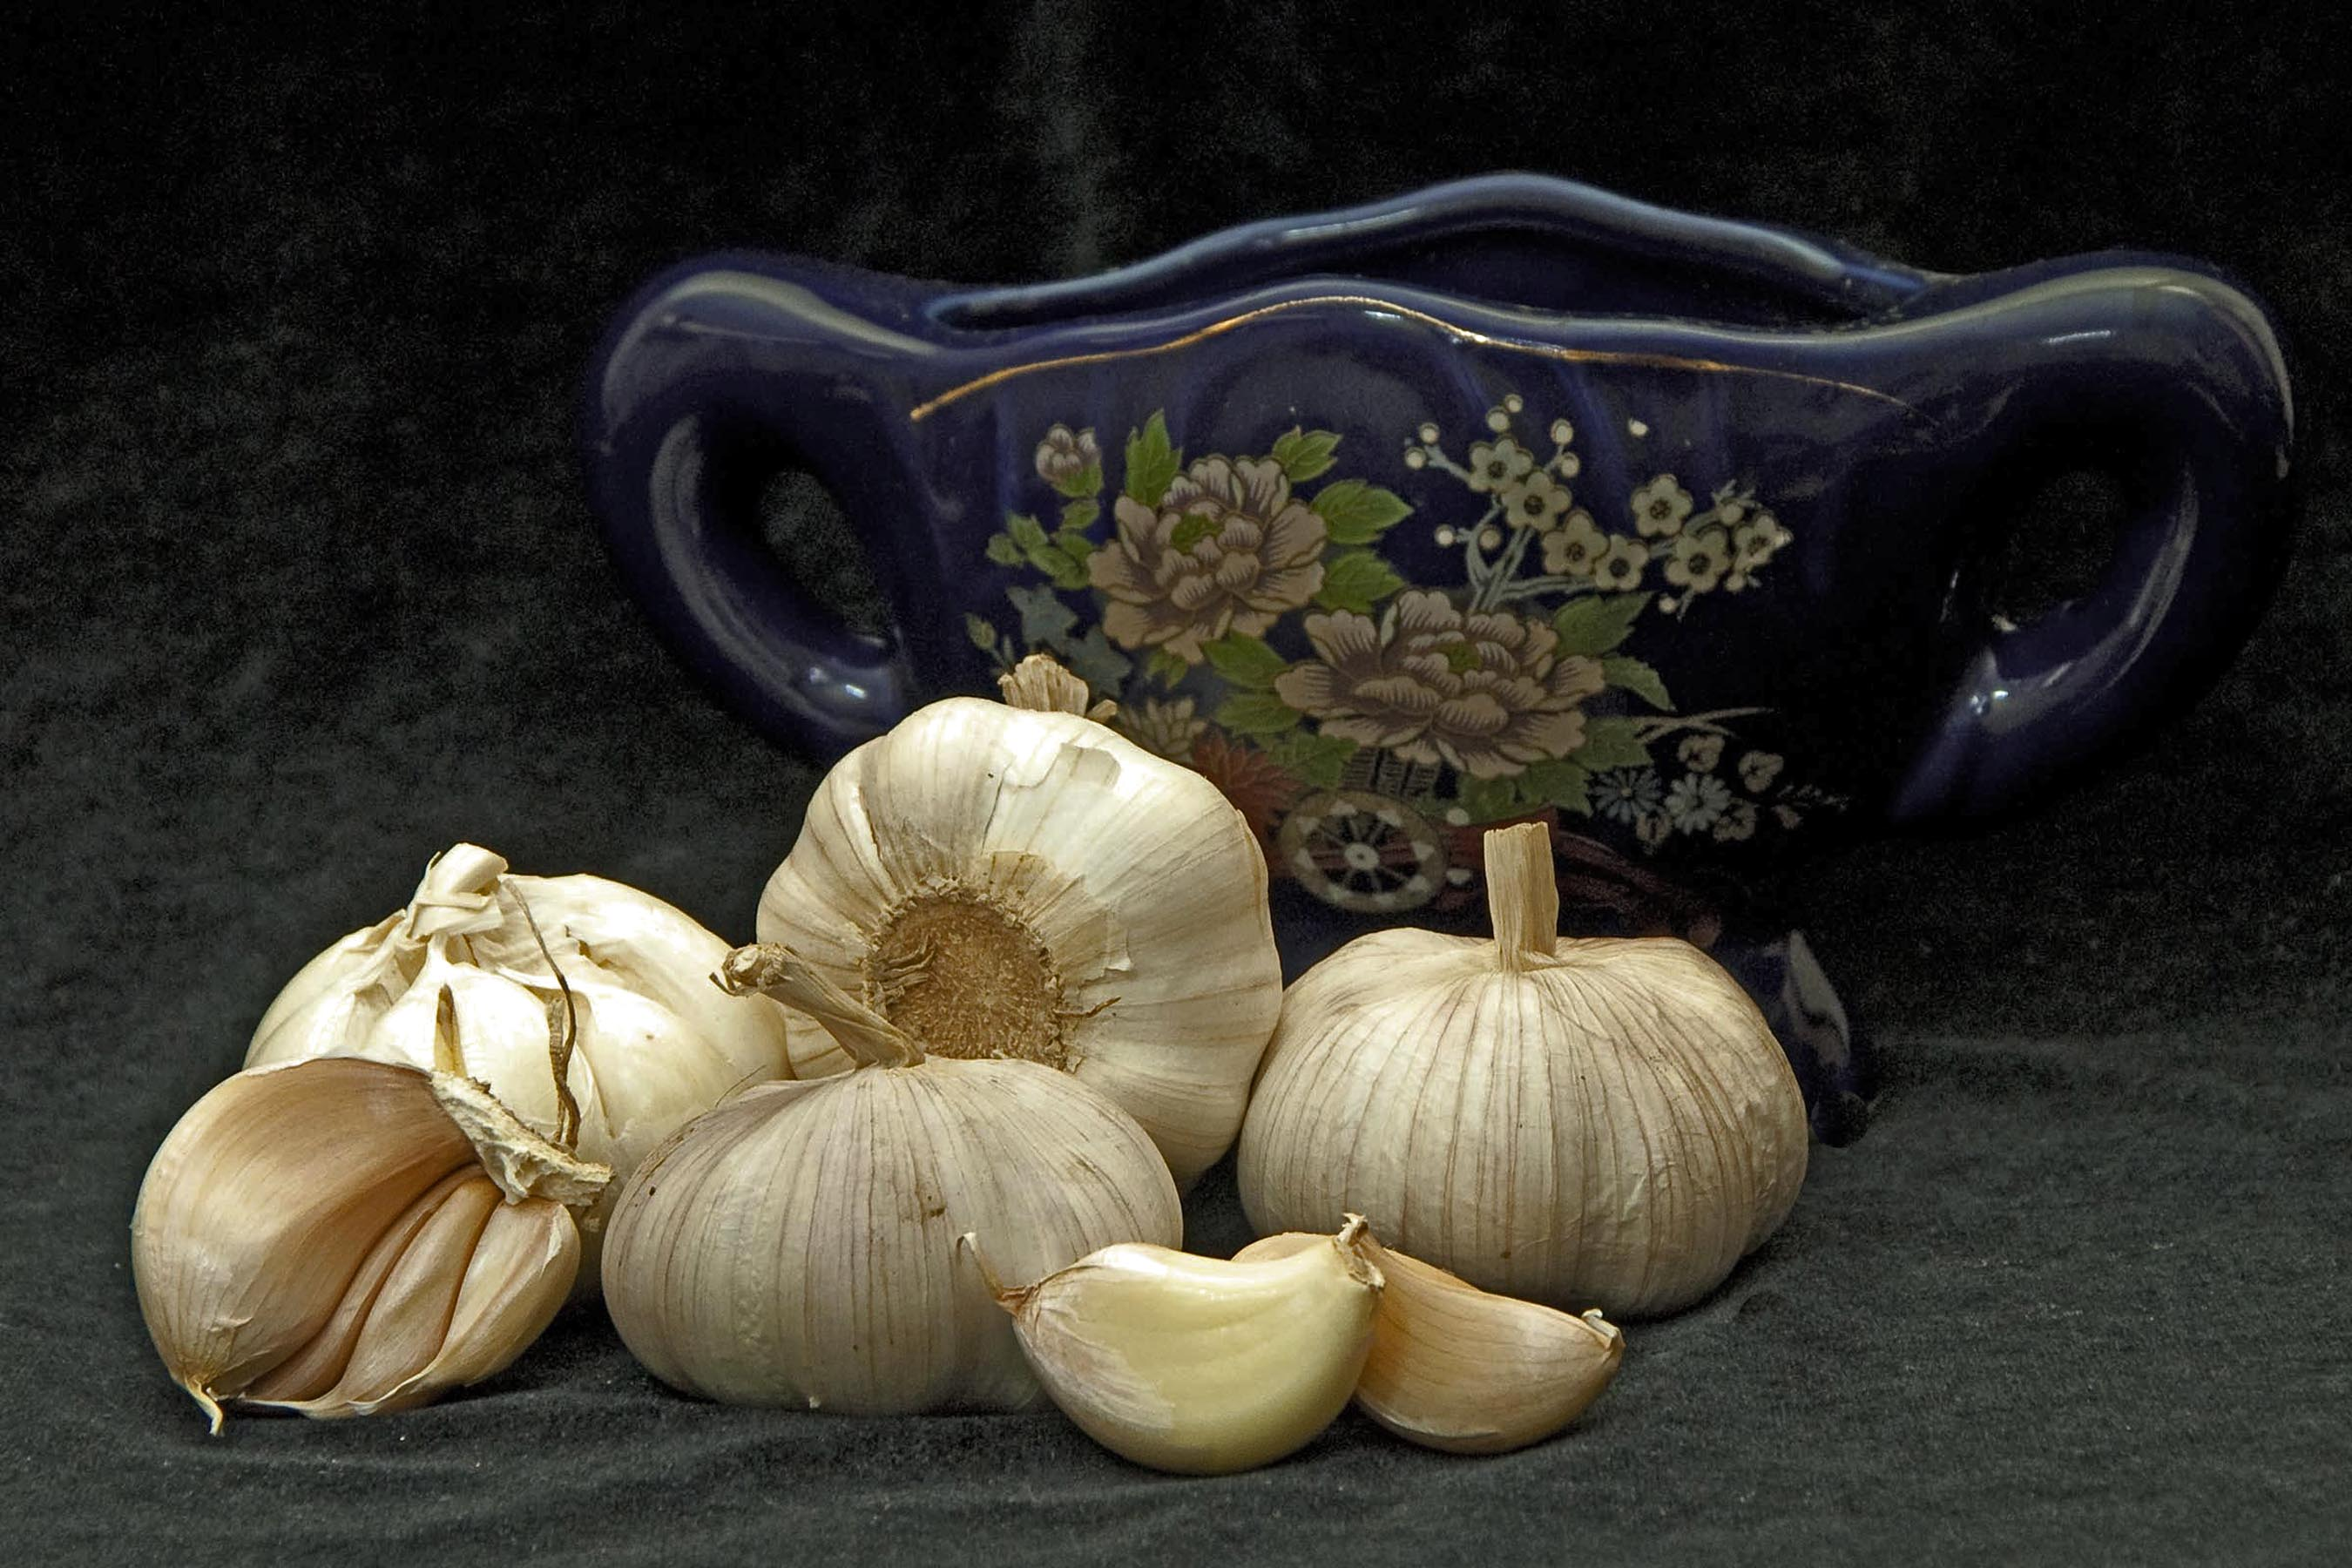 How to eat garlic